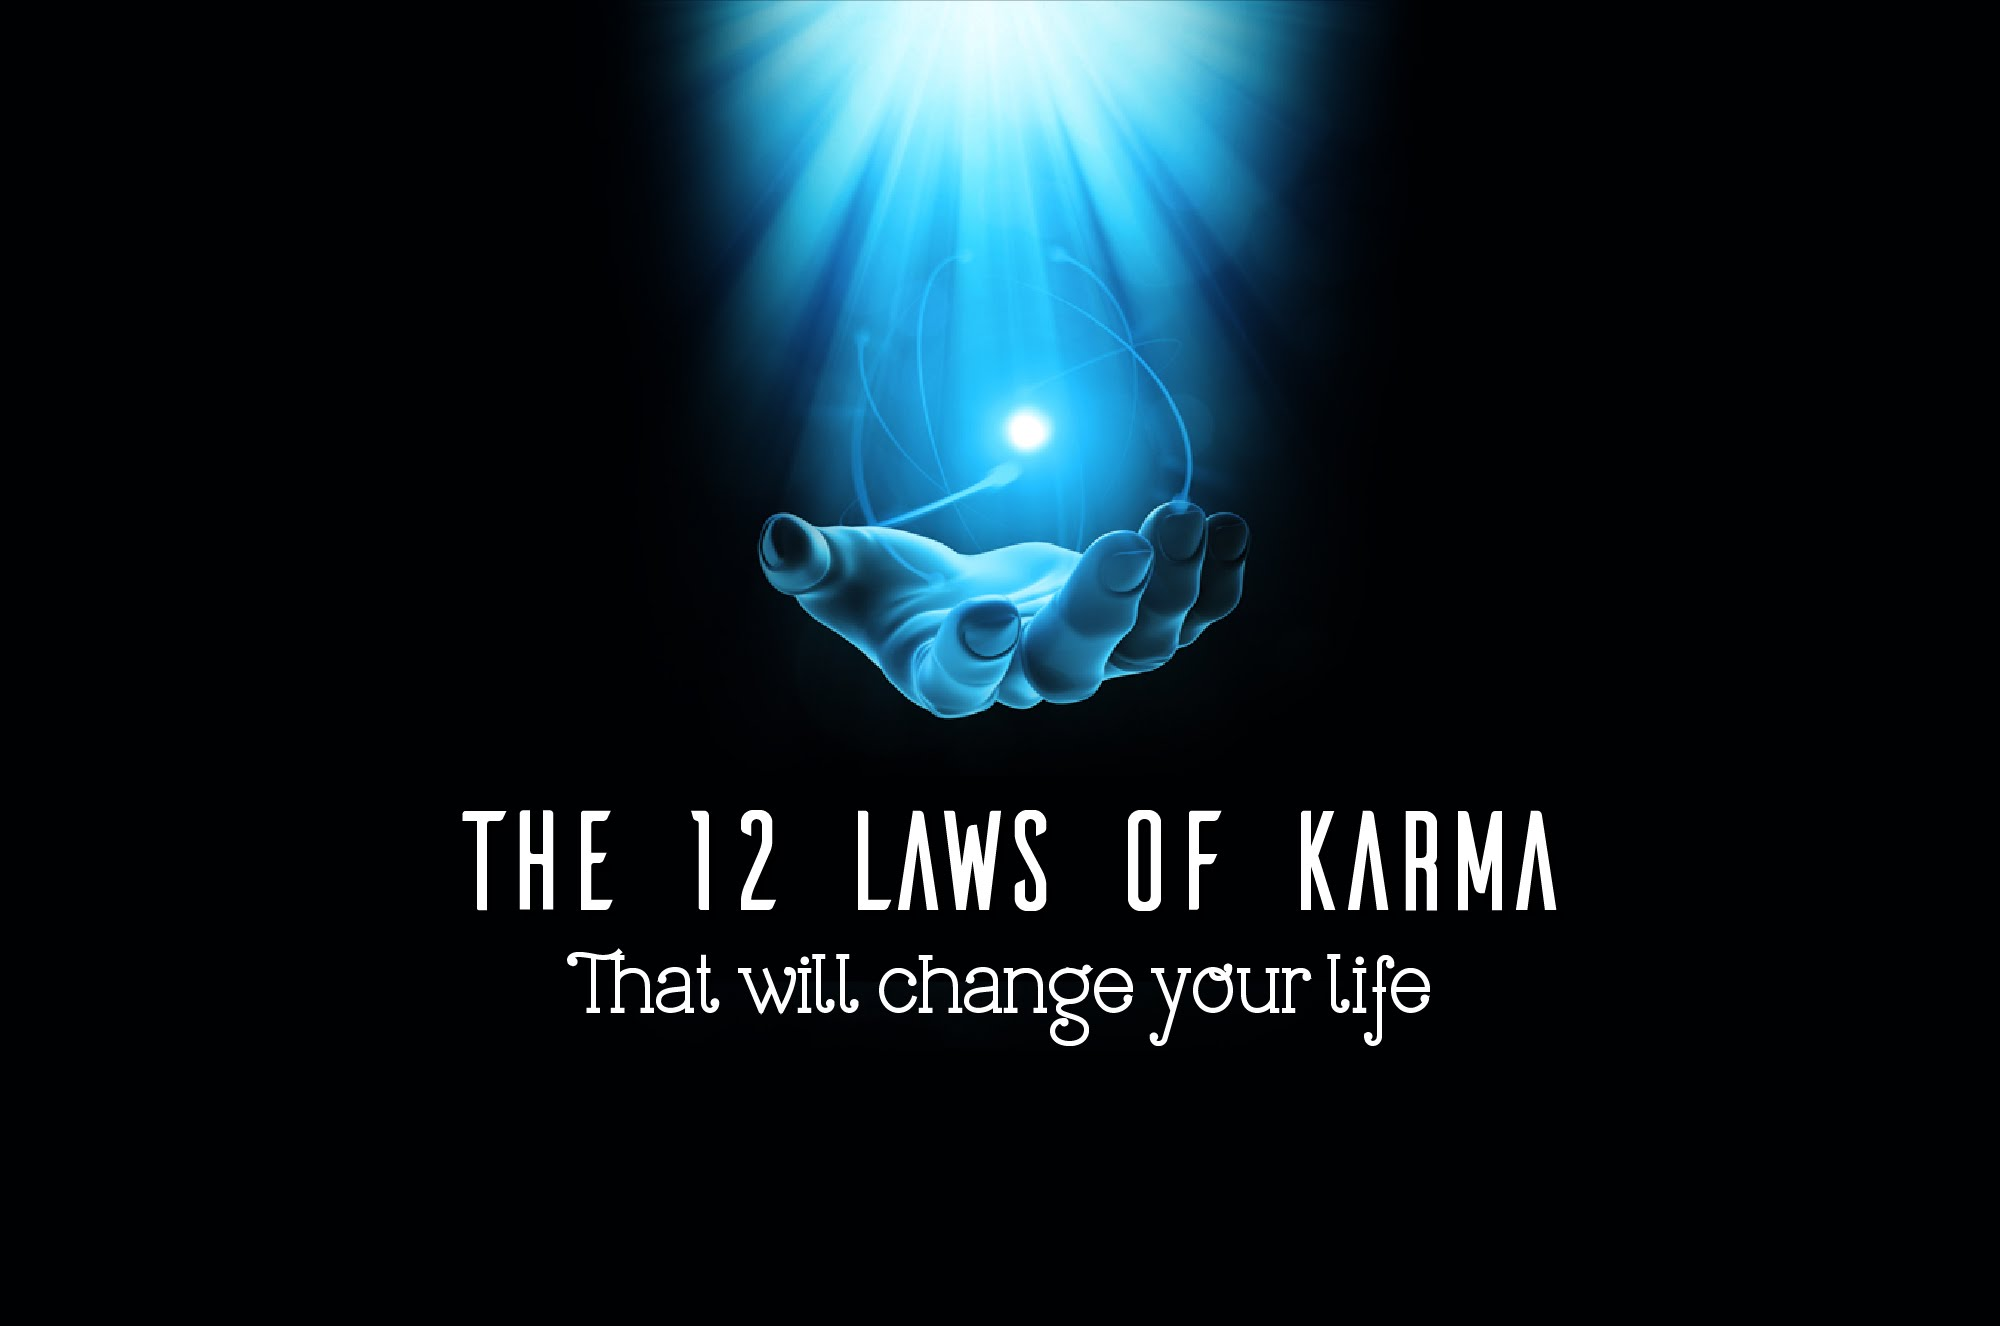 alignthoughts-the-12-laws-of-karma-that-will-change-your-life